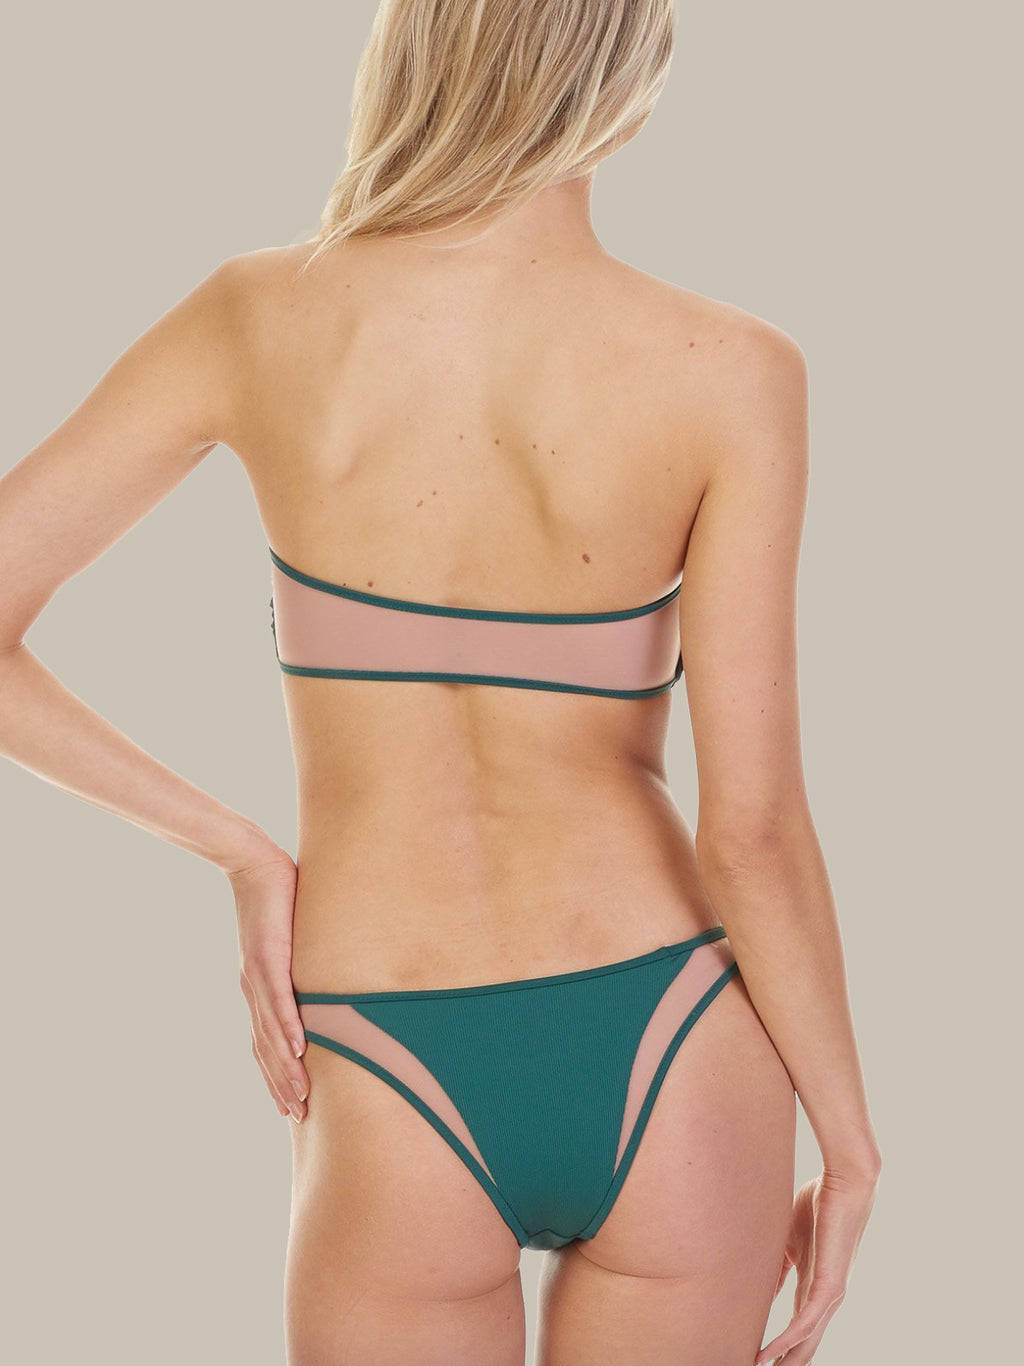 The Manon Bottoms are emerald green and feature mesh detail. These bikini bottoms also have minimal coverage and pair perfectly with the Royale Top.